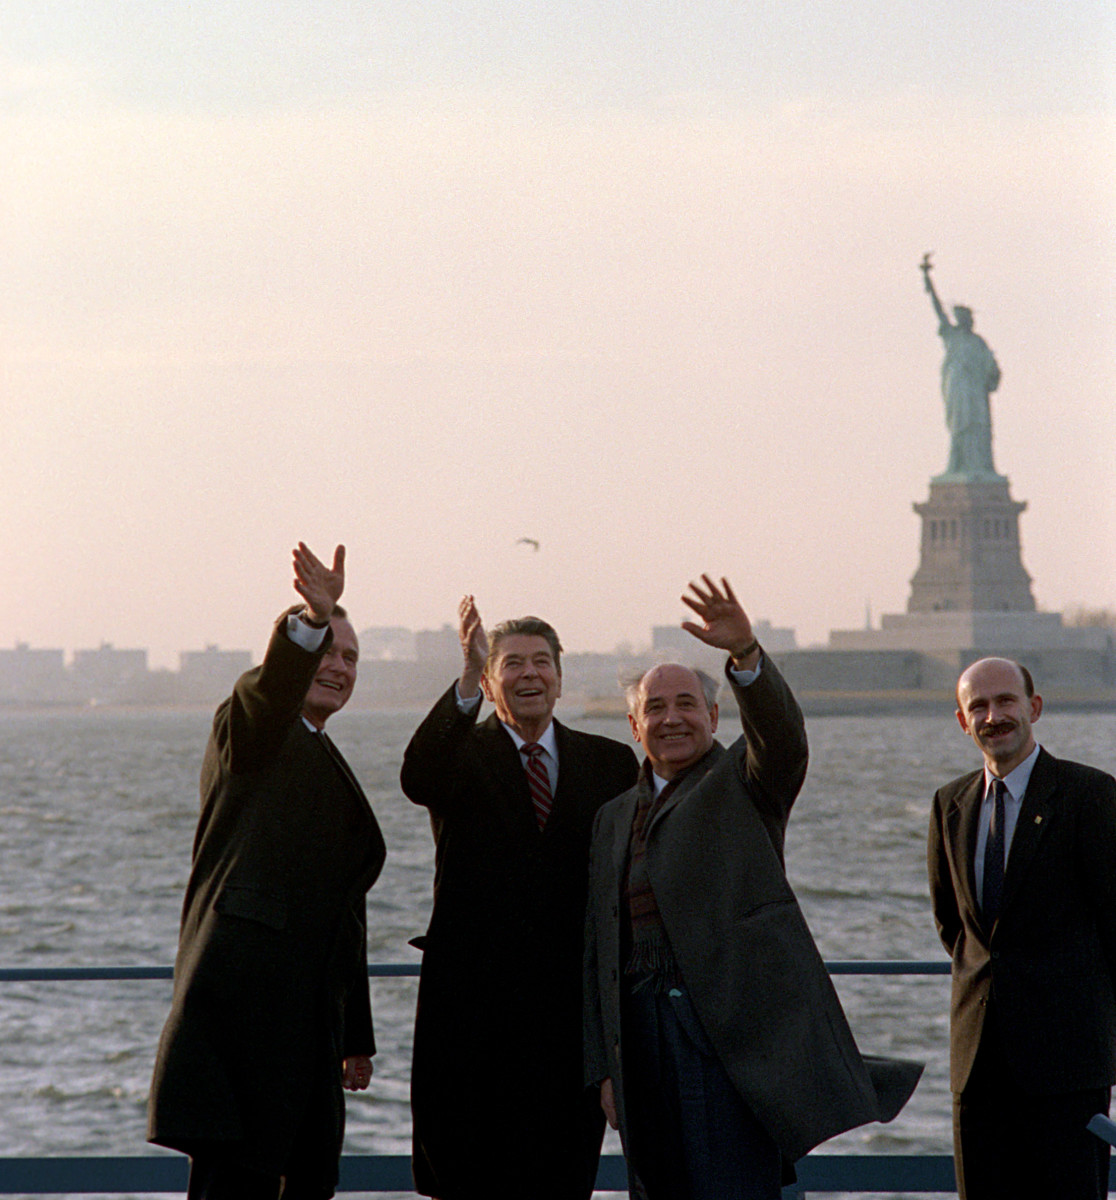 George Bush, Ronald Reagan and Mikhail Gorbachev